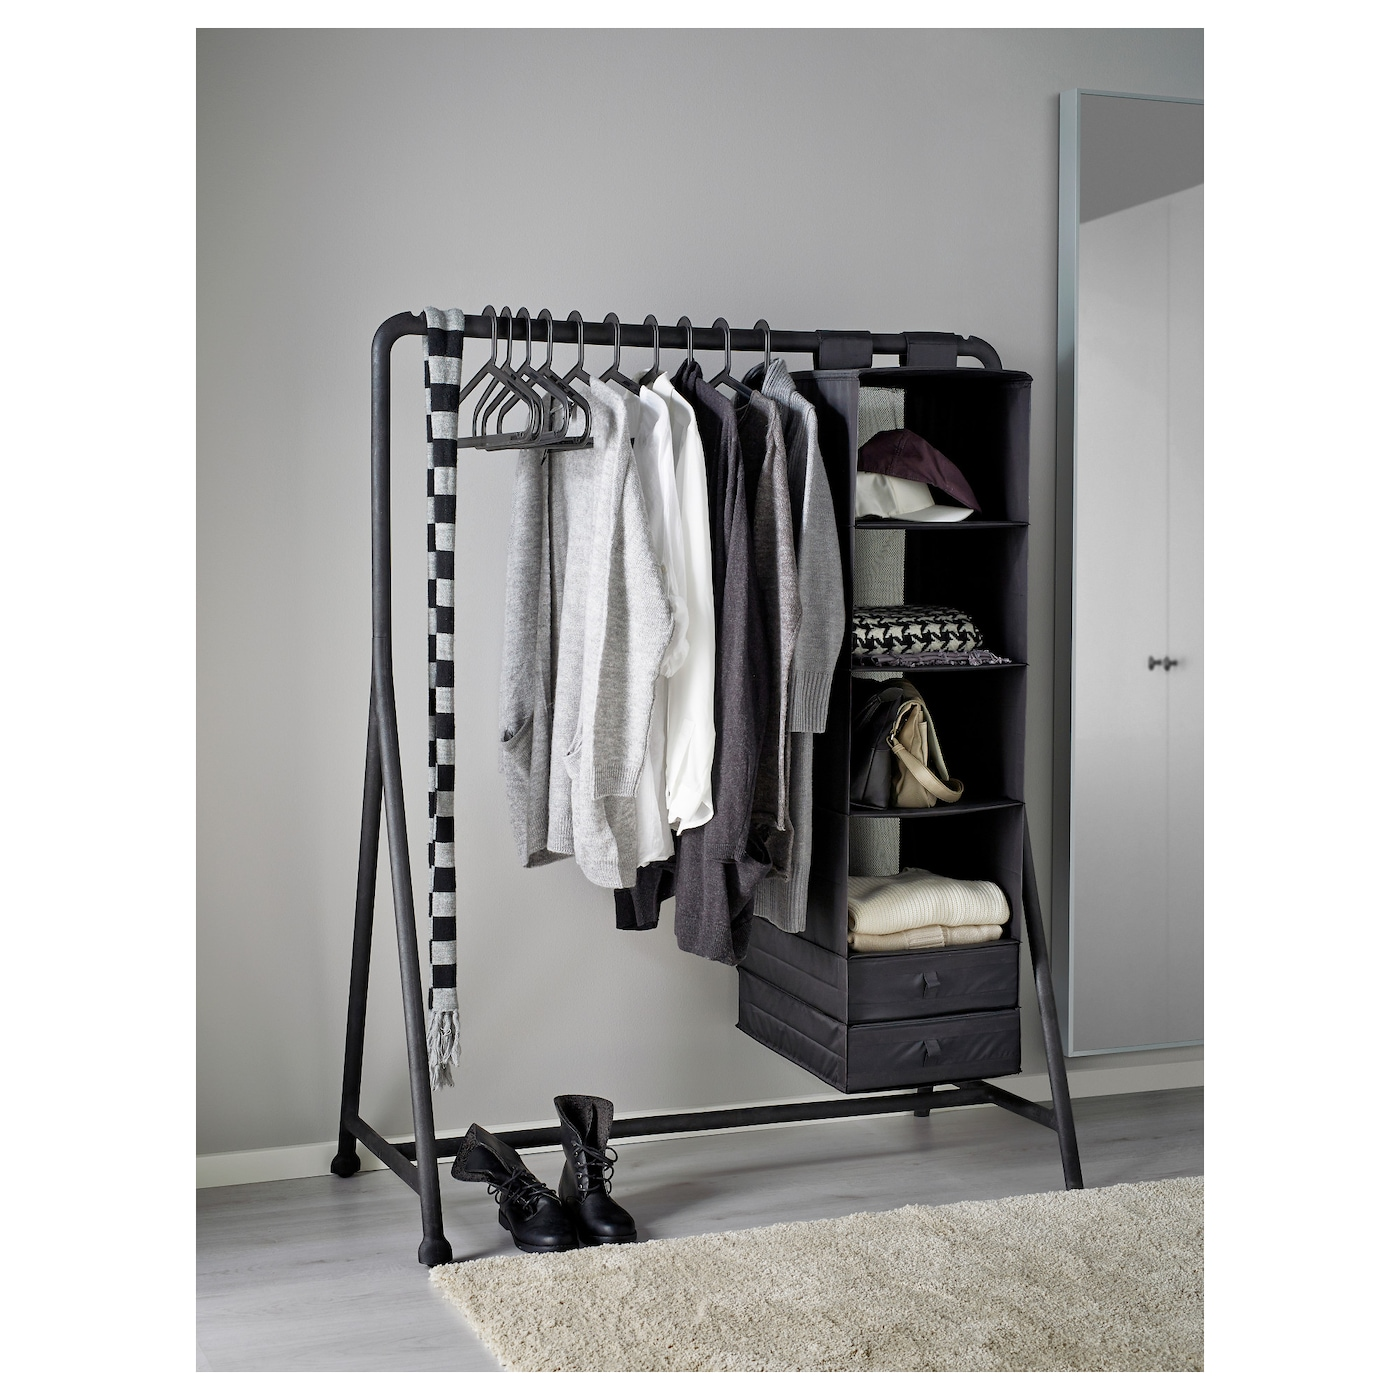 Clothes Rack: TURBO Clothes Rack, In/outdoor Black 117 X 59 Cm